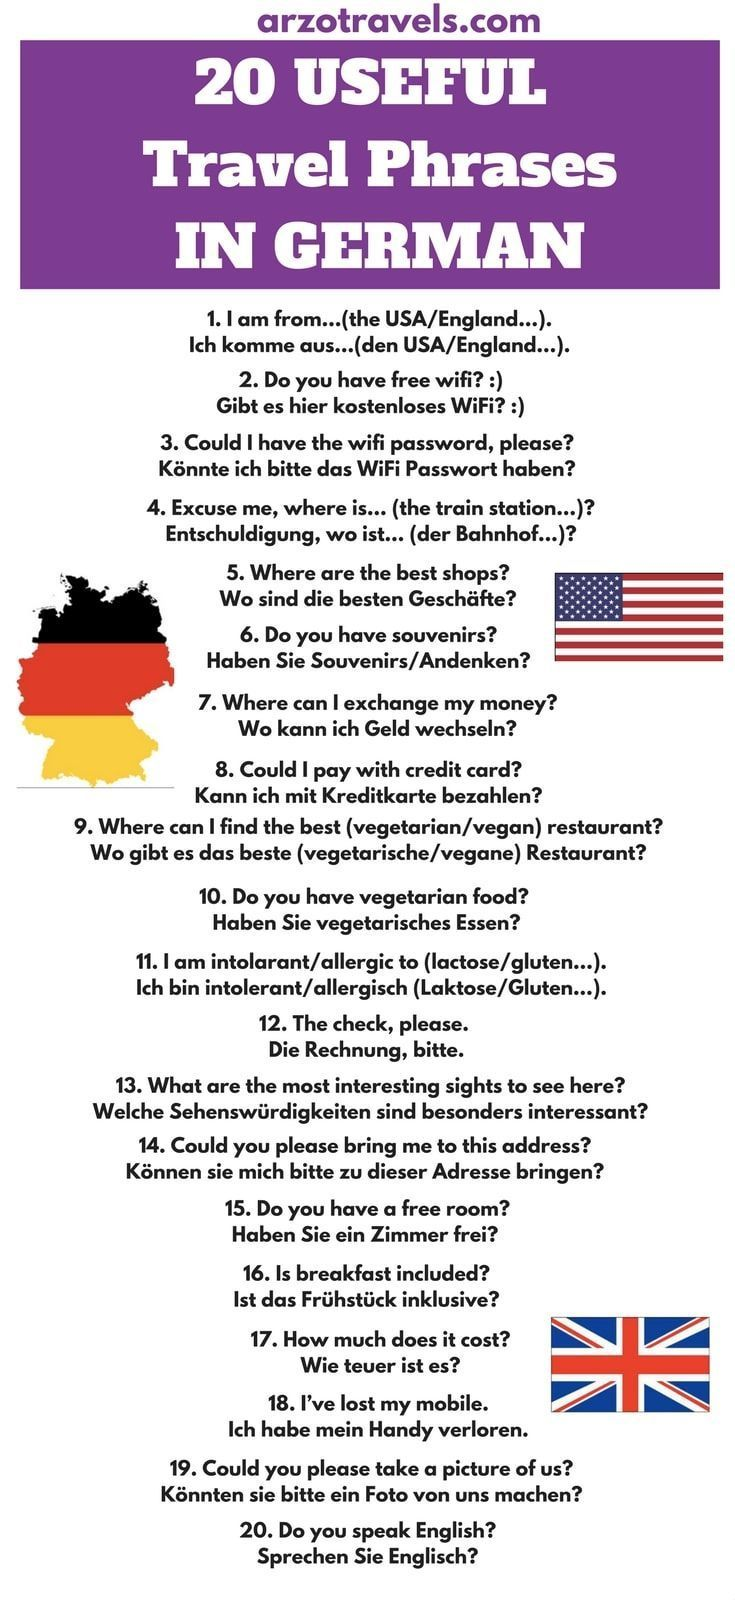 20 Most Useful Travel Phrases In German From English To Germany For Your Next Trip English Germ Travel Phrases German Phrases German Language Learning